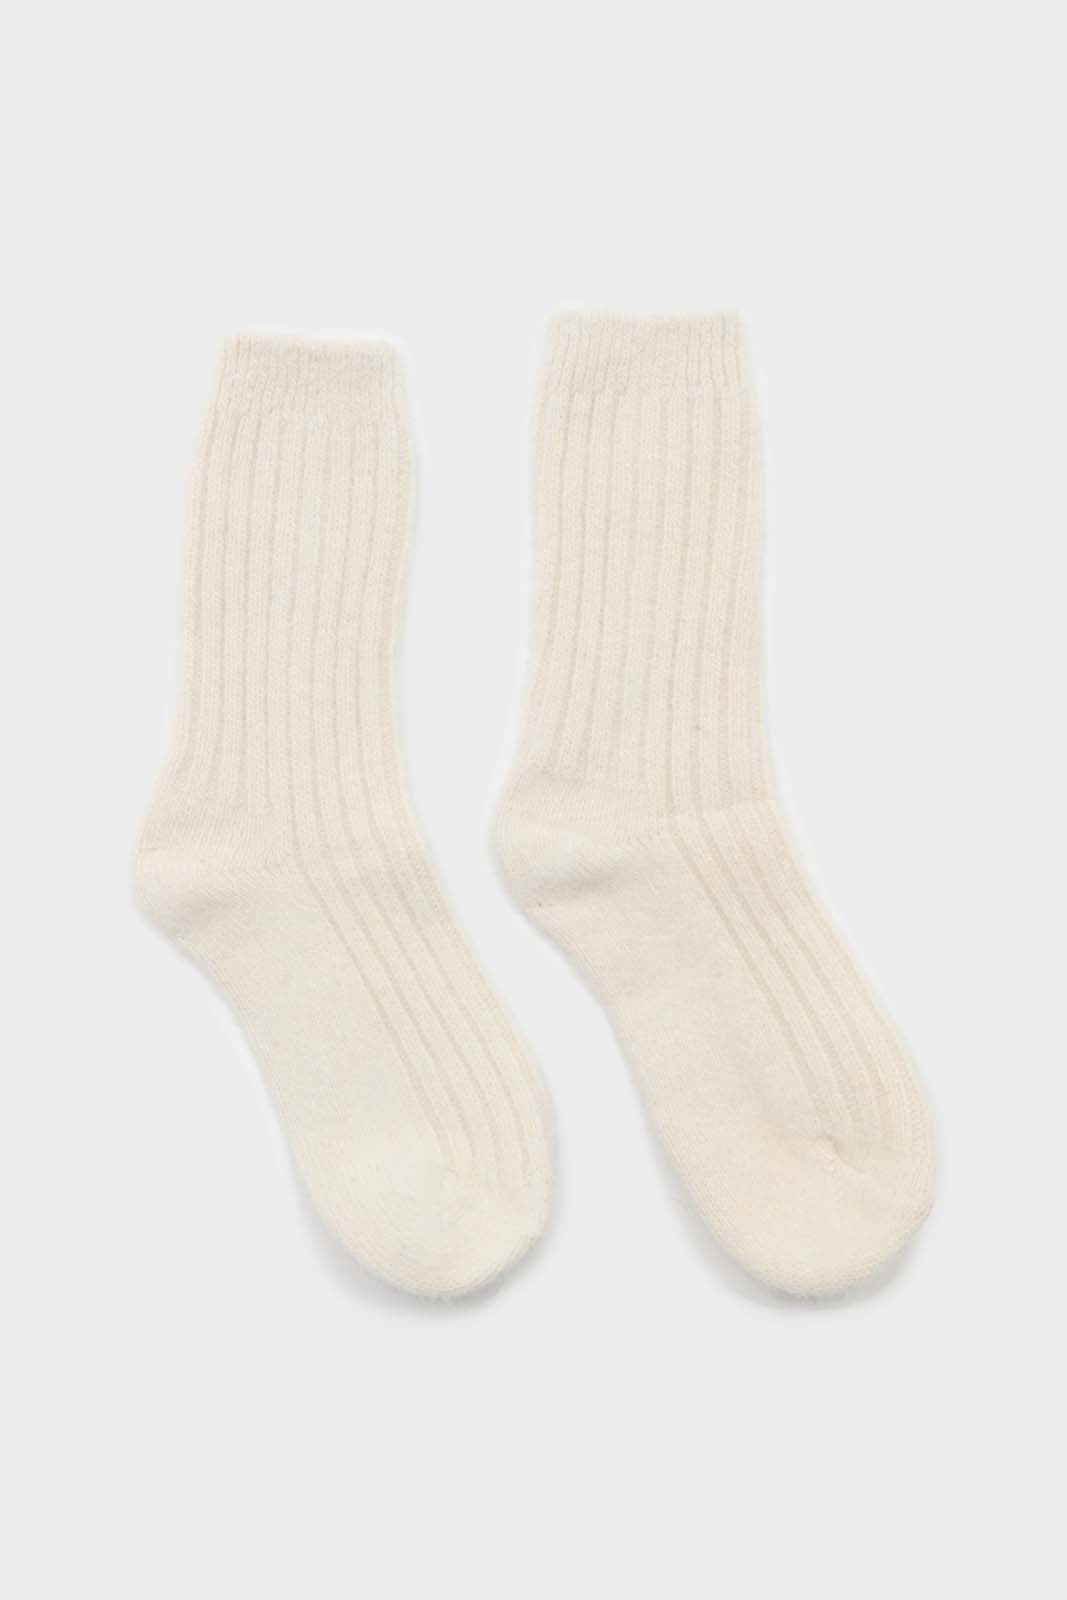 Ivory large ribbed angora socks2